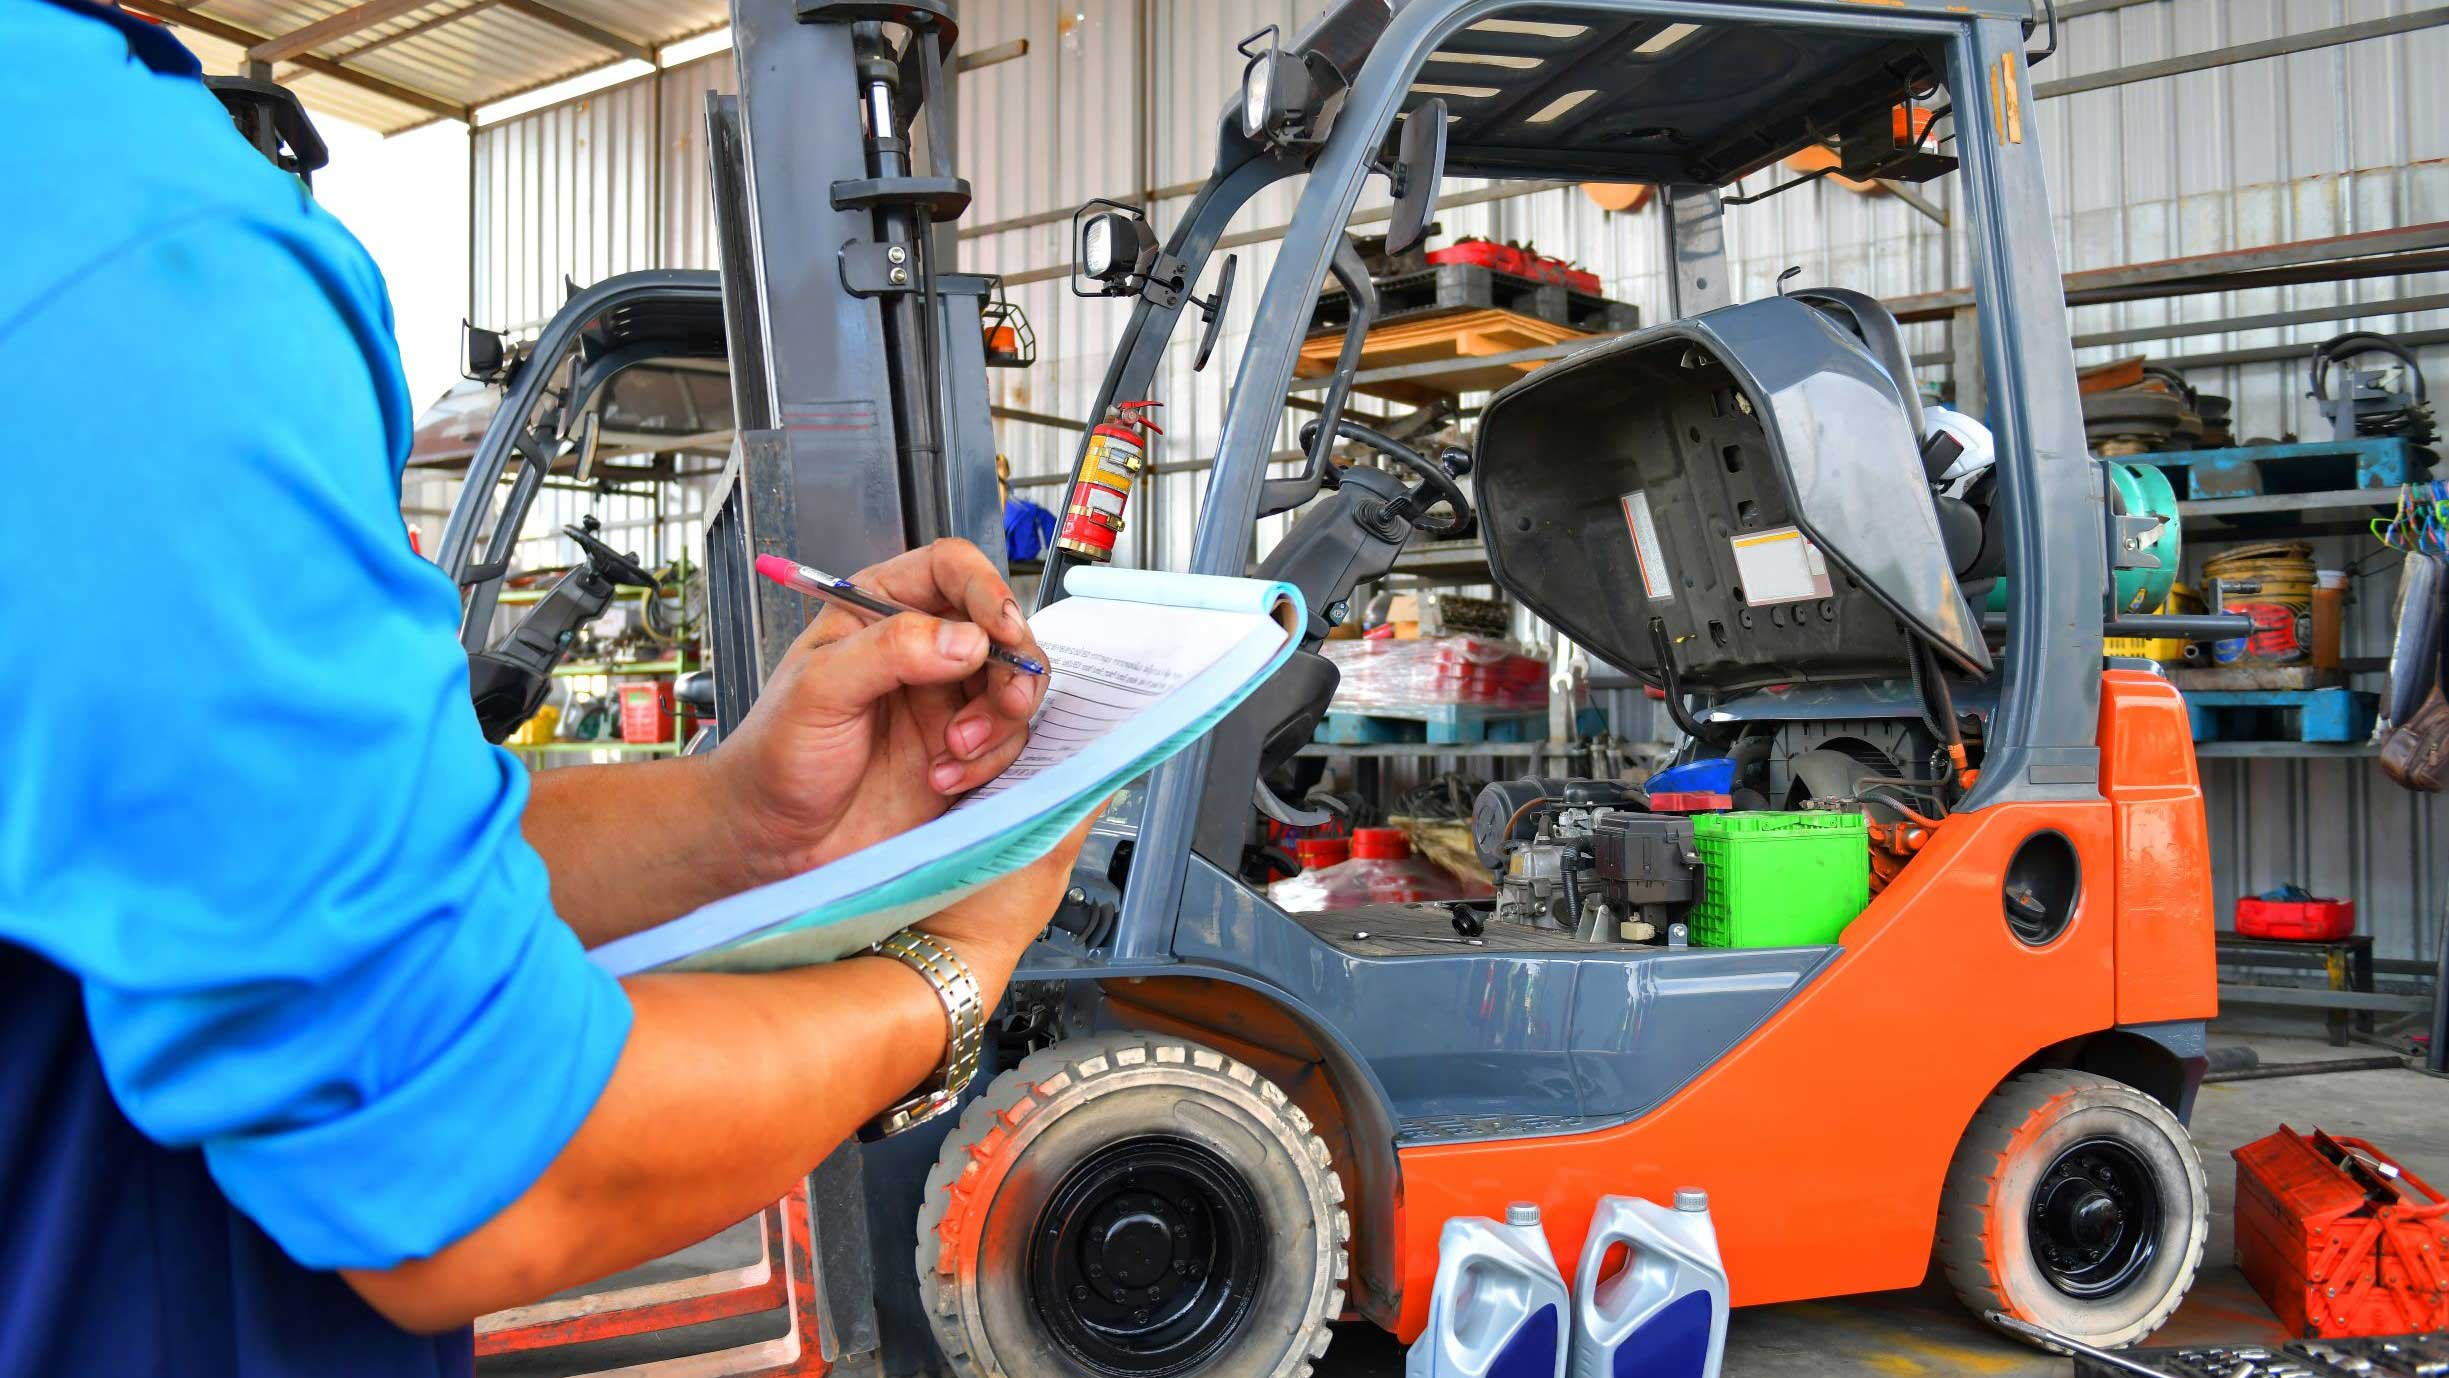 Forklift Maintenance: How to Conduct Fork & Chain Inspections